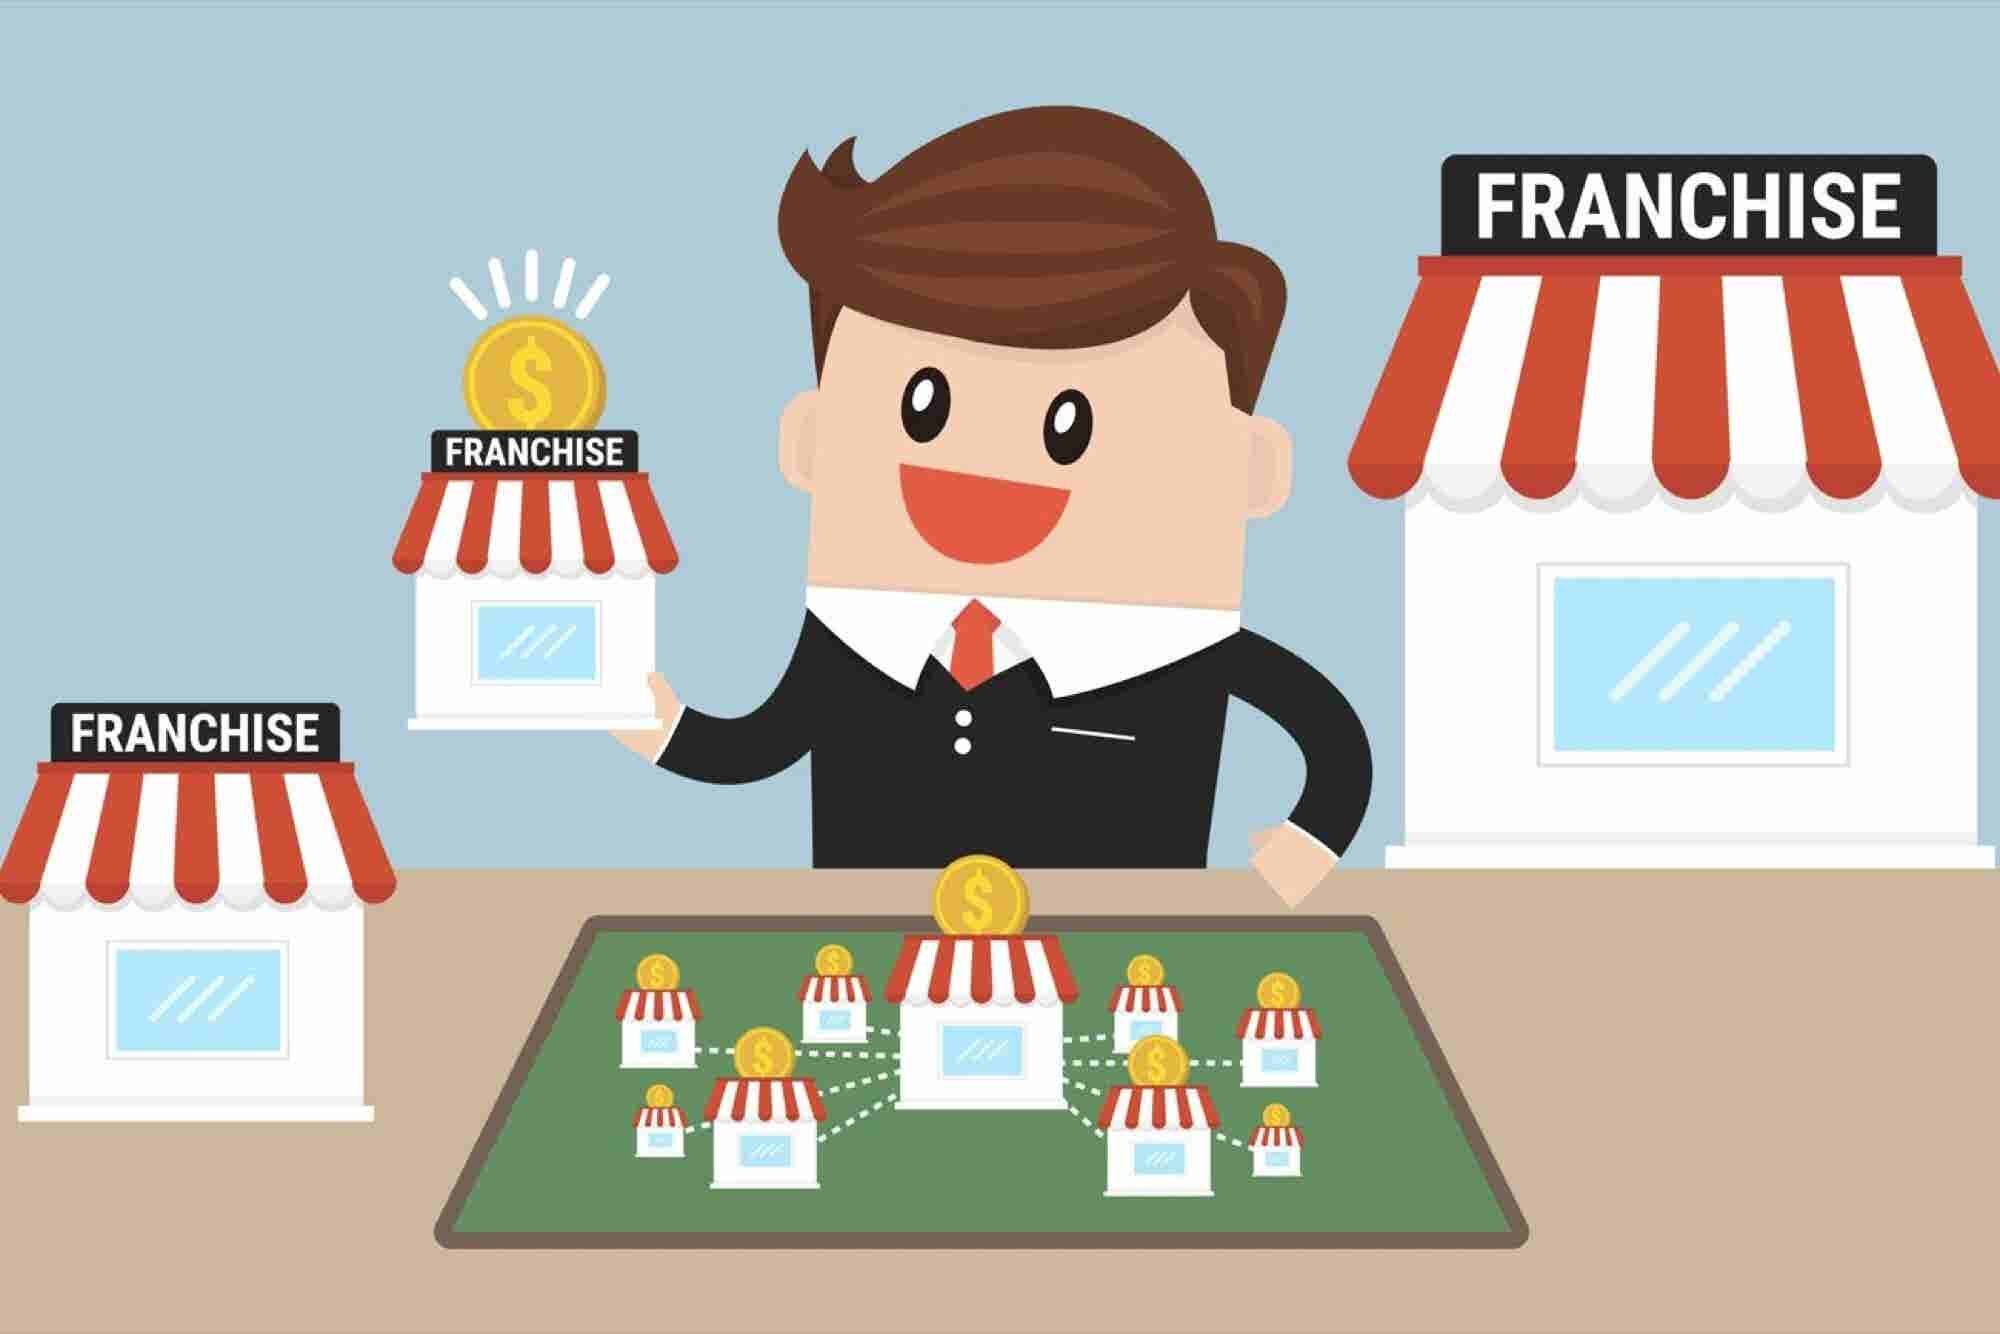 Small Strategic Steps For Franchisors to Gain Momentum in Business